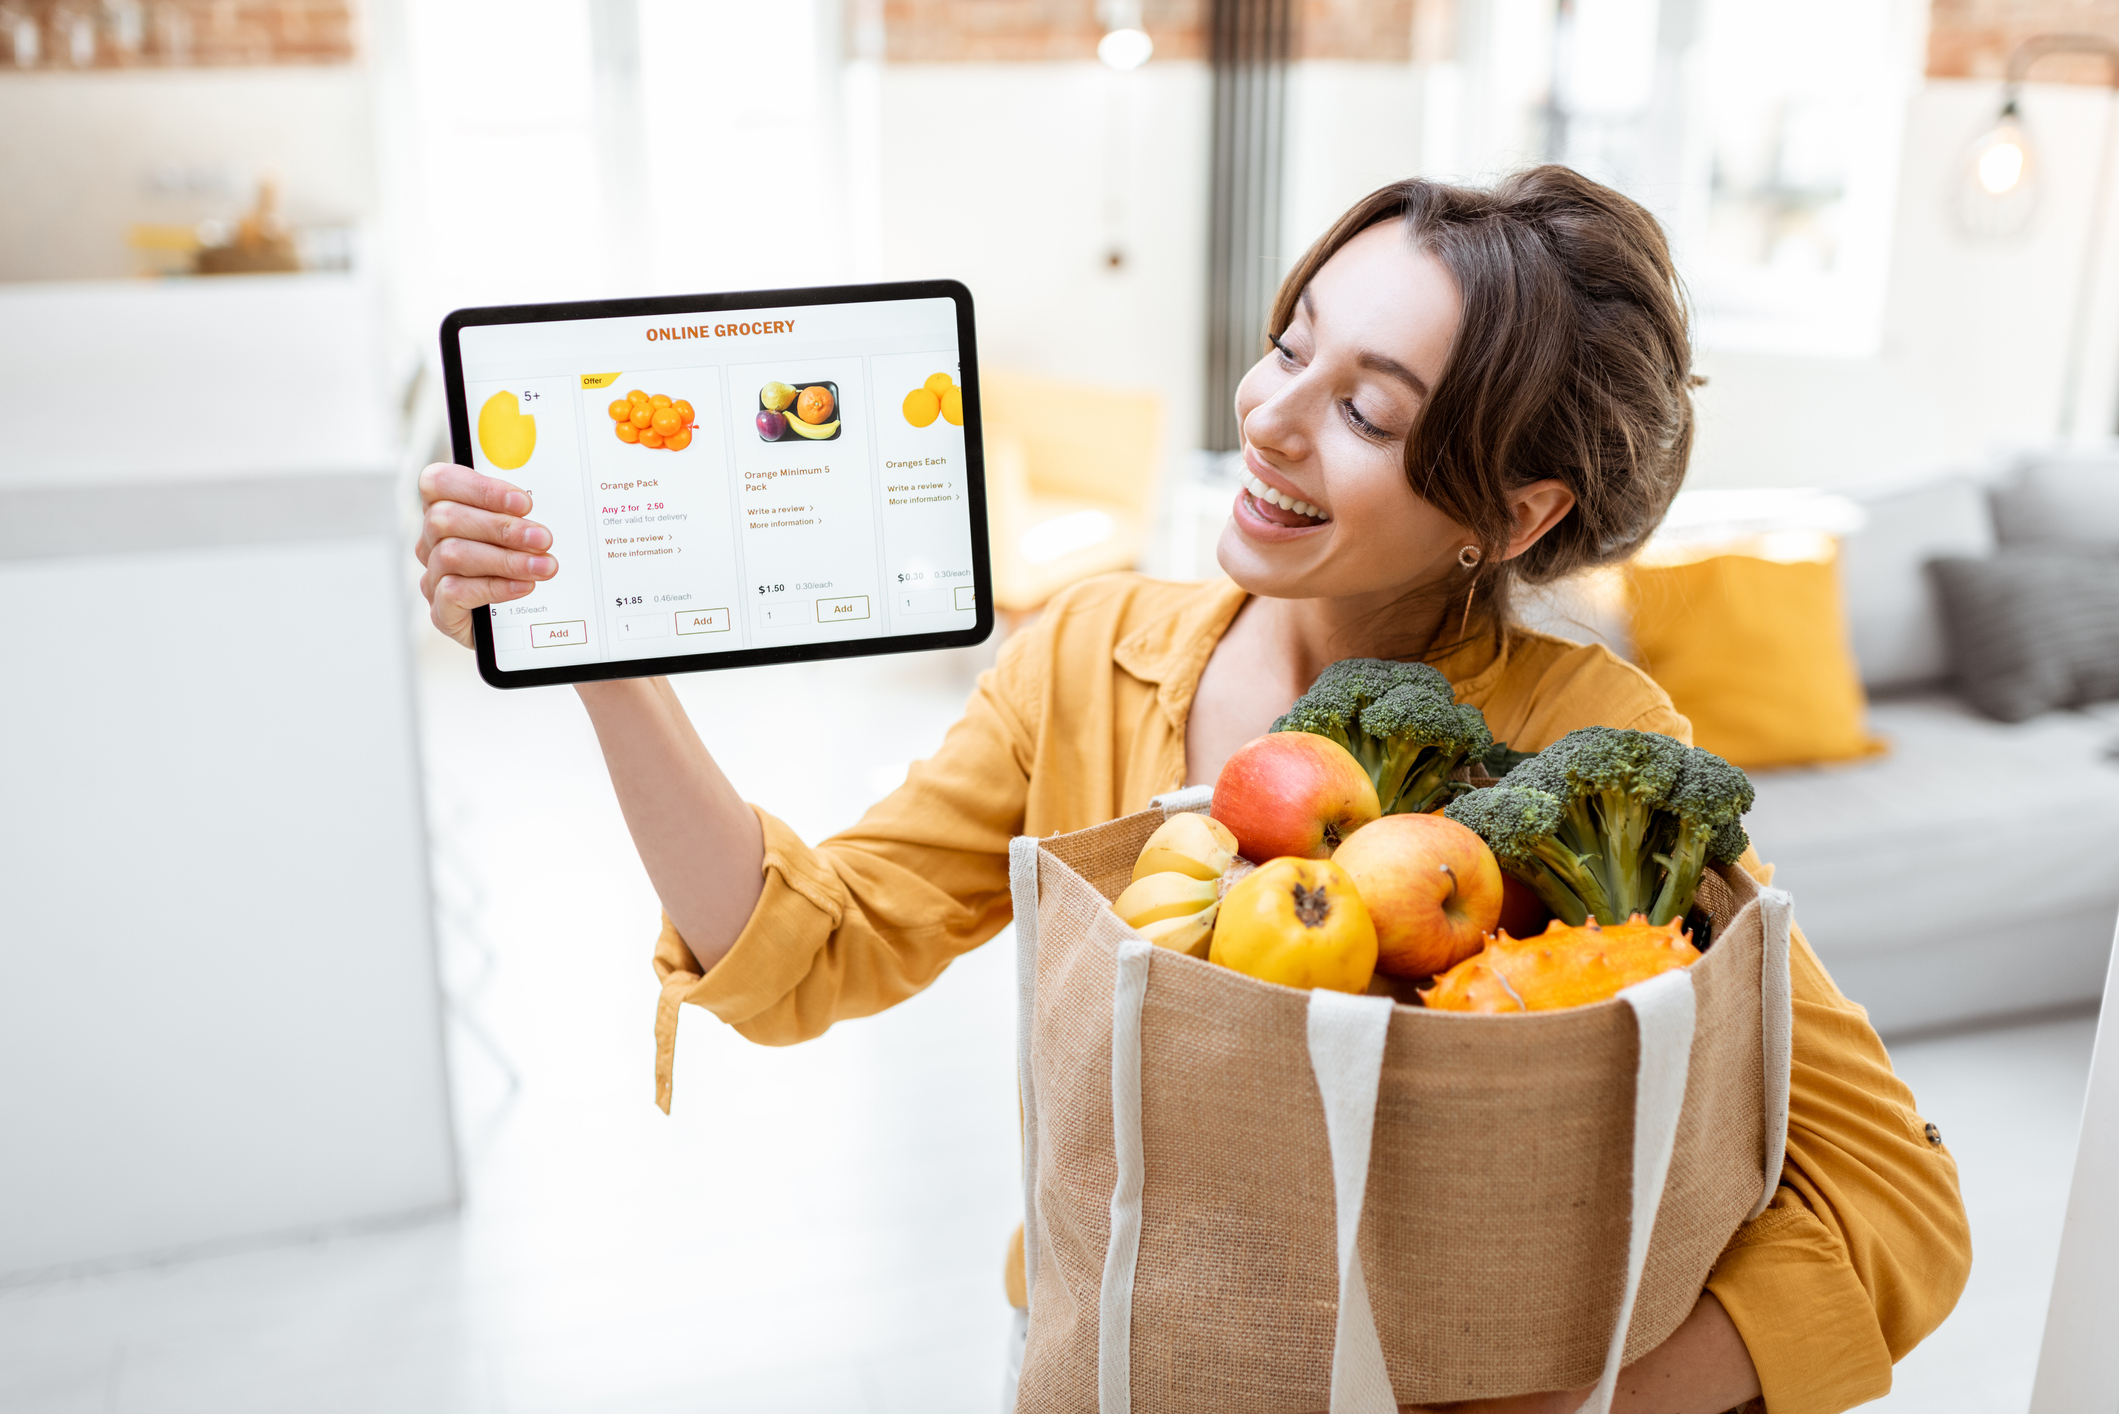 Want to avoid junk food temptation? Get your groceries online